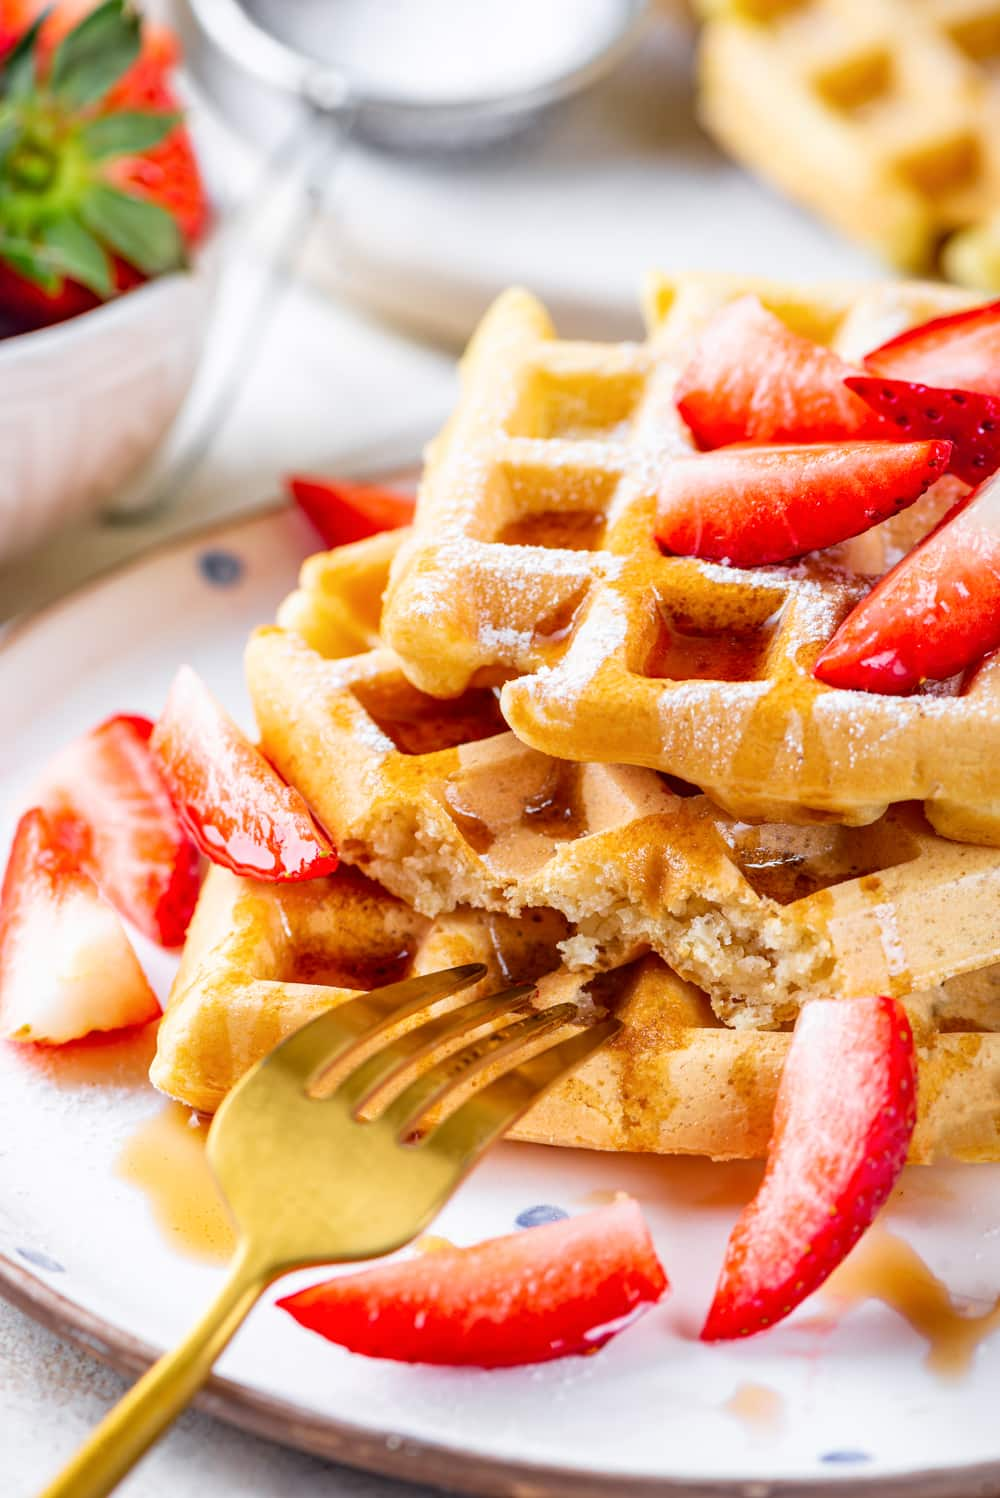 A stack of three square vegan waffles with maple syrup and cut up strawberries on them. The waffles are on a white plate and a gold fork is at the front of the plate touching the bottom waffle. There is part of bowl and strawberries and waffle in the background behind the plate.